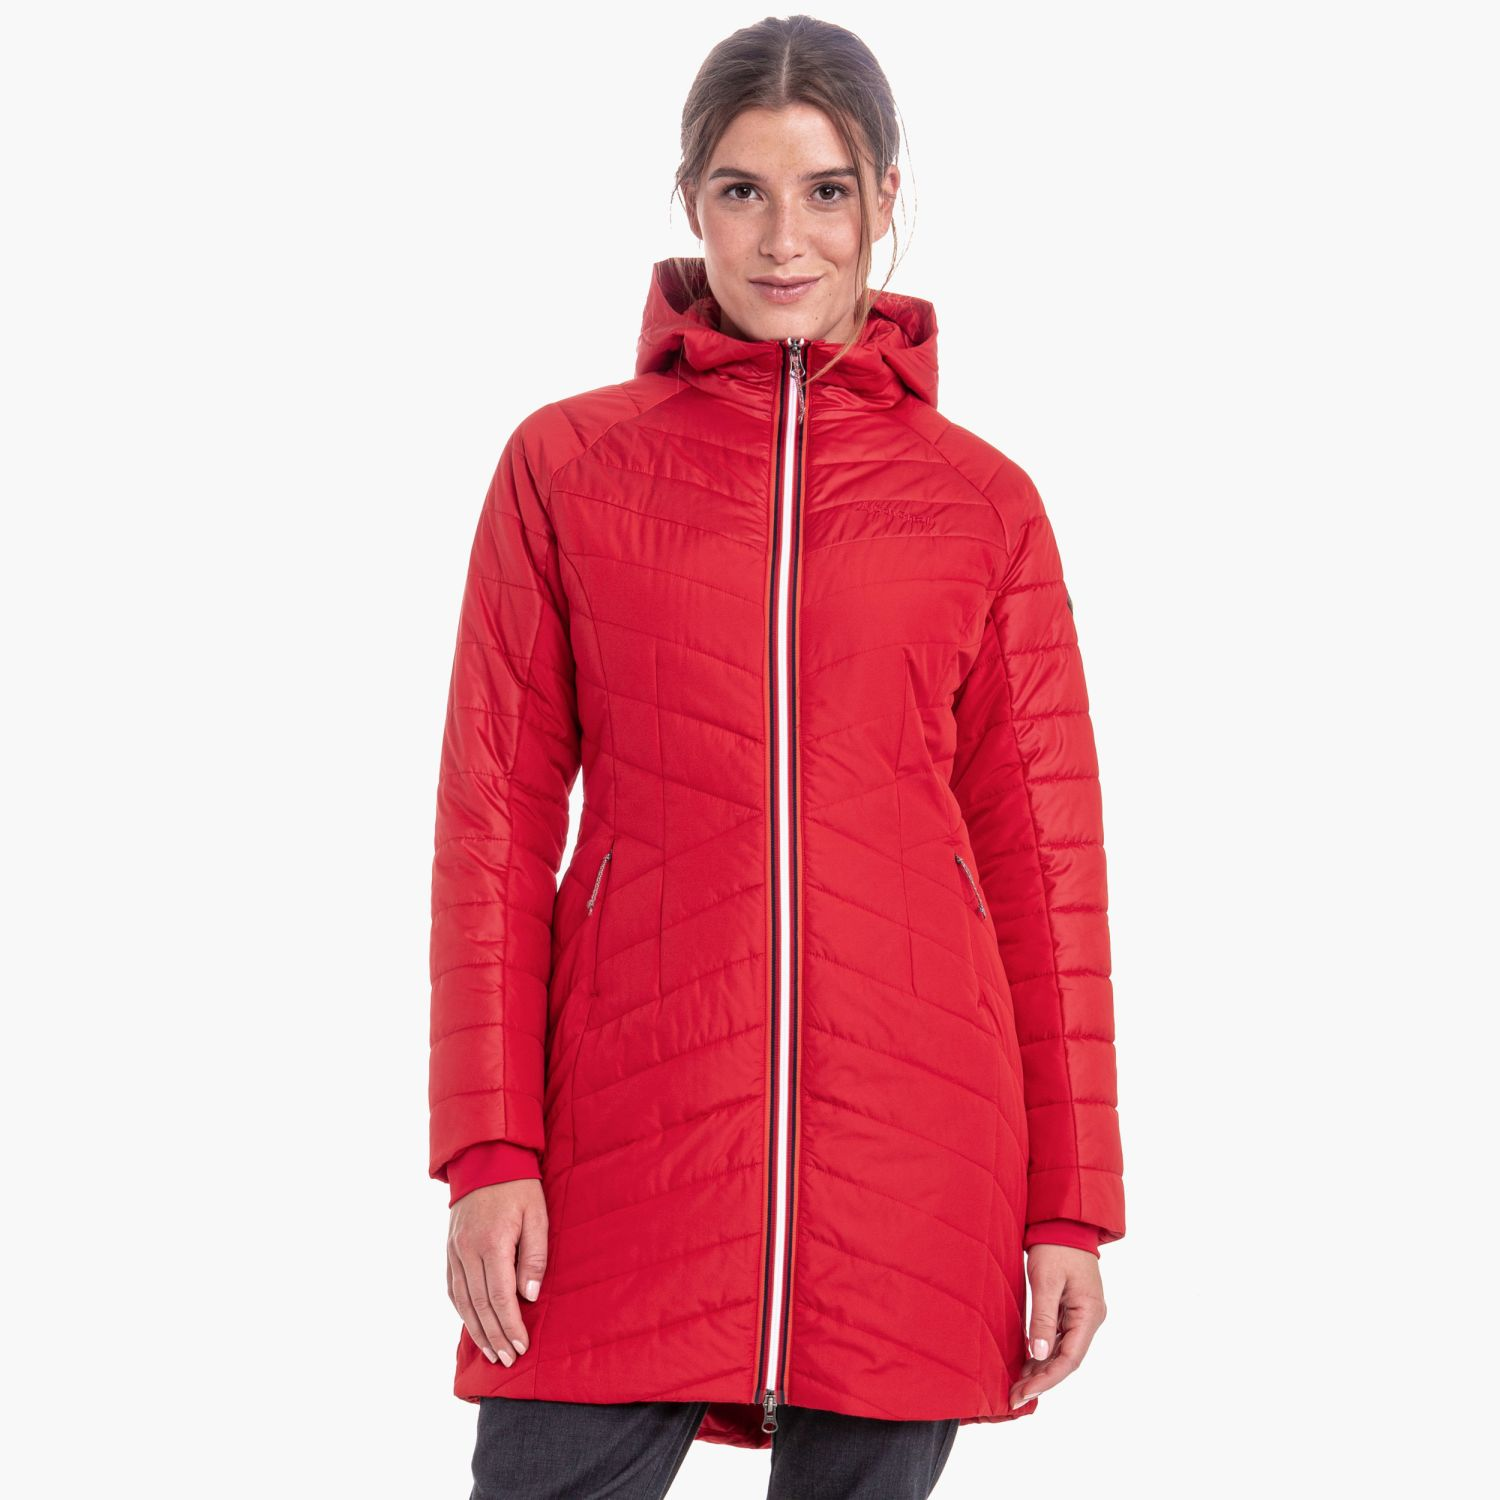 Orleans Thermo rotSchöffel Coat Thermo rotSchöffel Thermo Orleans rotSchöffel Coat Coat Orleans SUGqzMVjLp